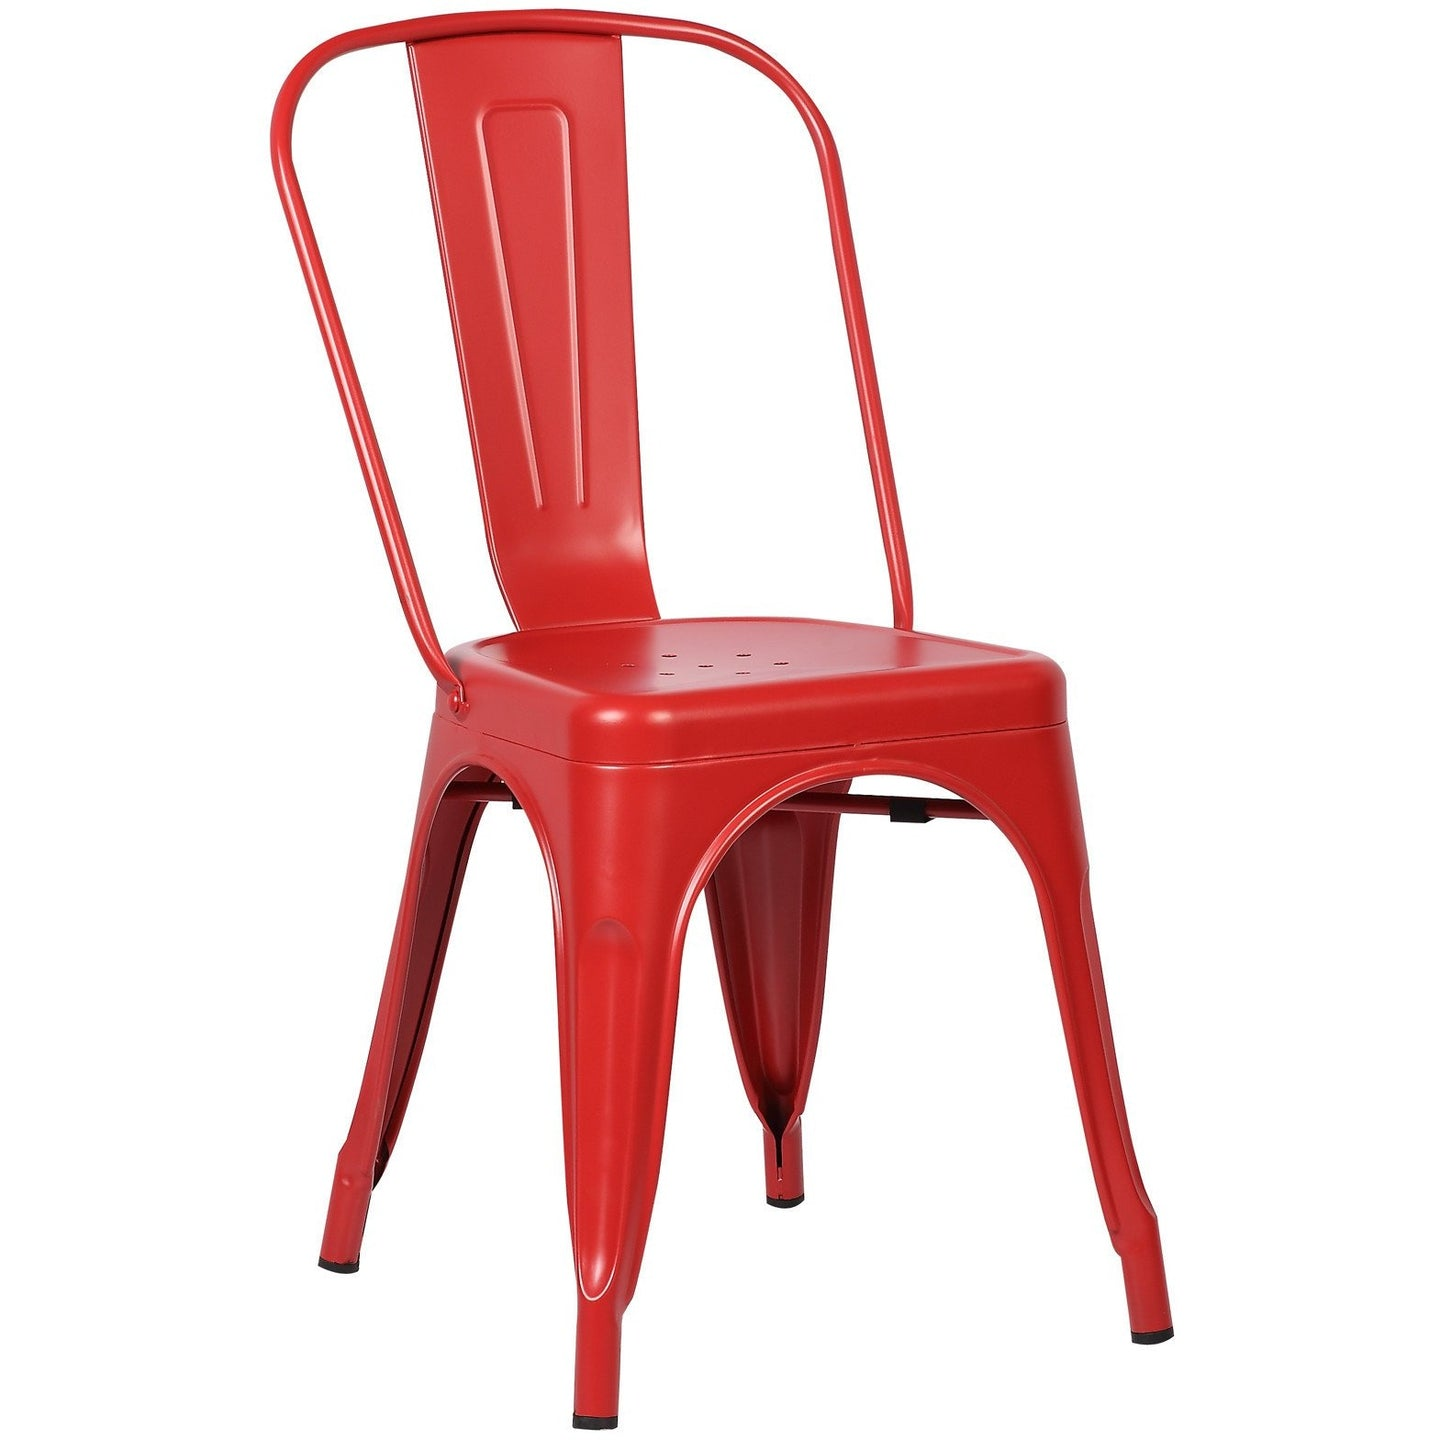 Lanna Furniture Siam Side Chair Red, Dining Chairs - Lanna Furniture, Minimal & Modern - 1